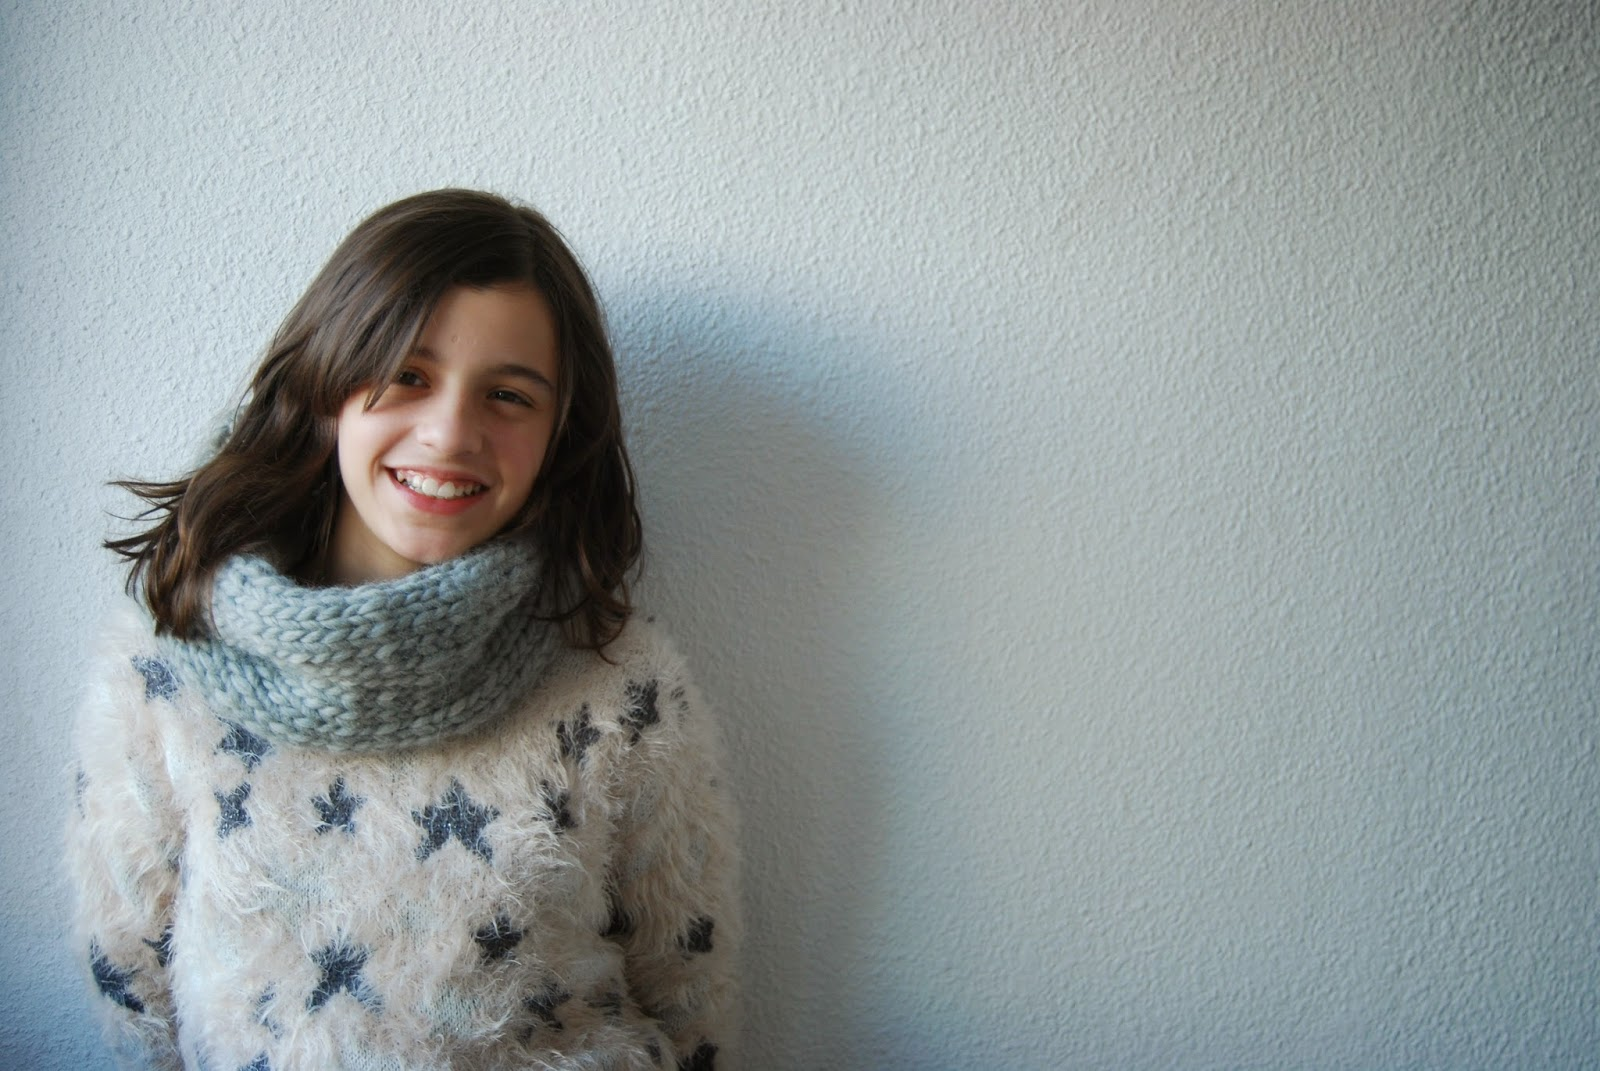 http://sosunnyblog.blogspot.com.es/2015/02/knitting-is-new-yoga.html